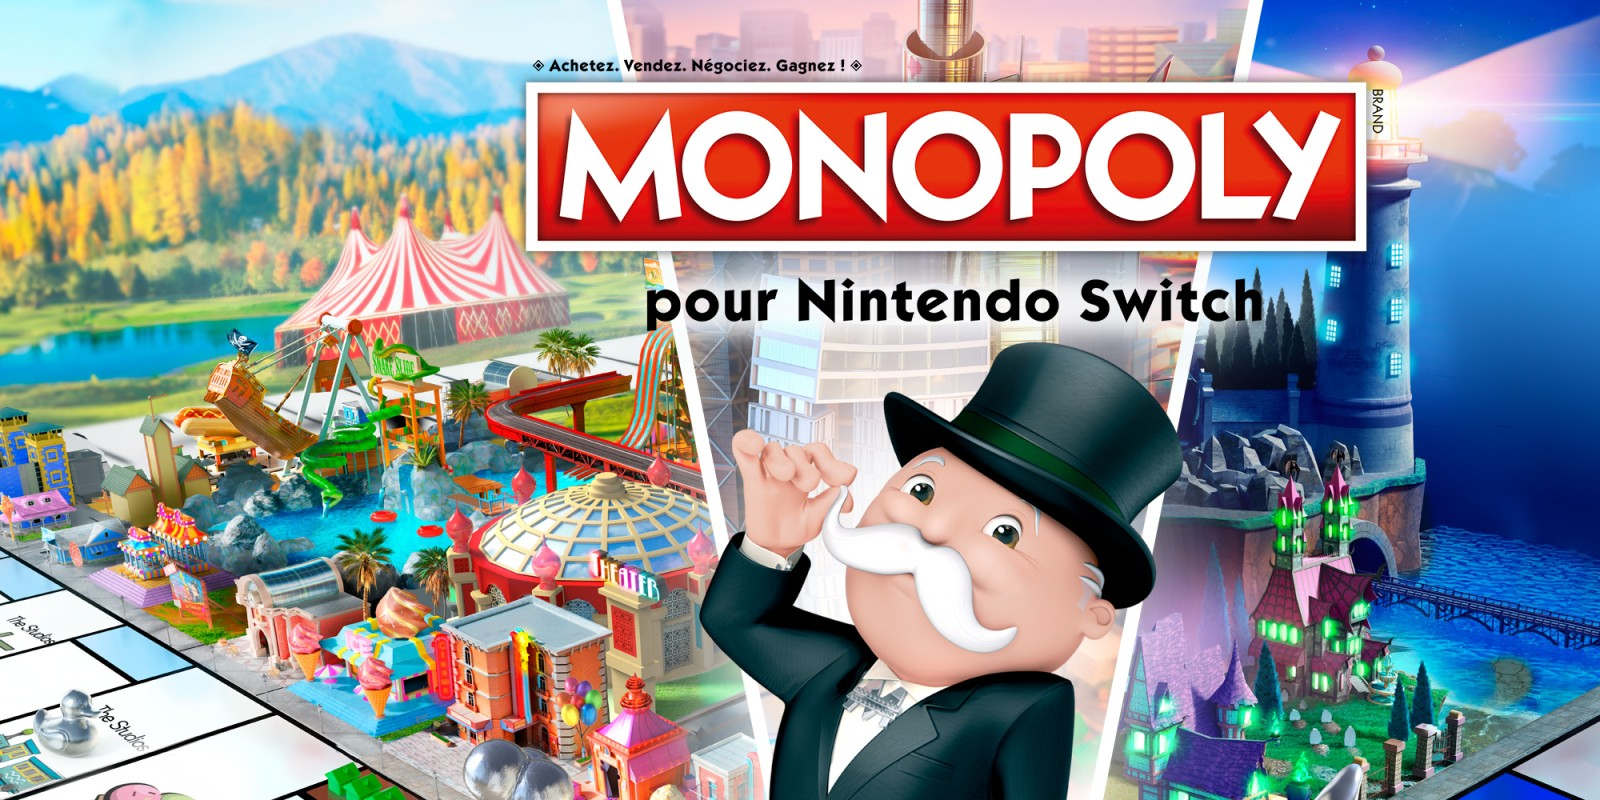 Monopoly pour Nintendo Switch